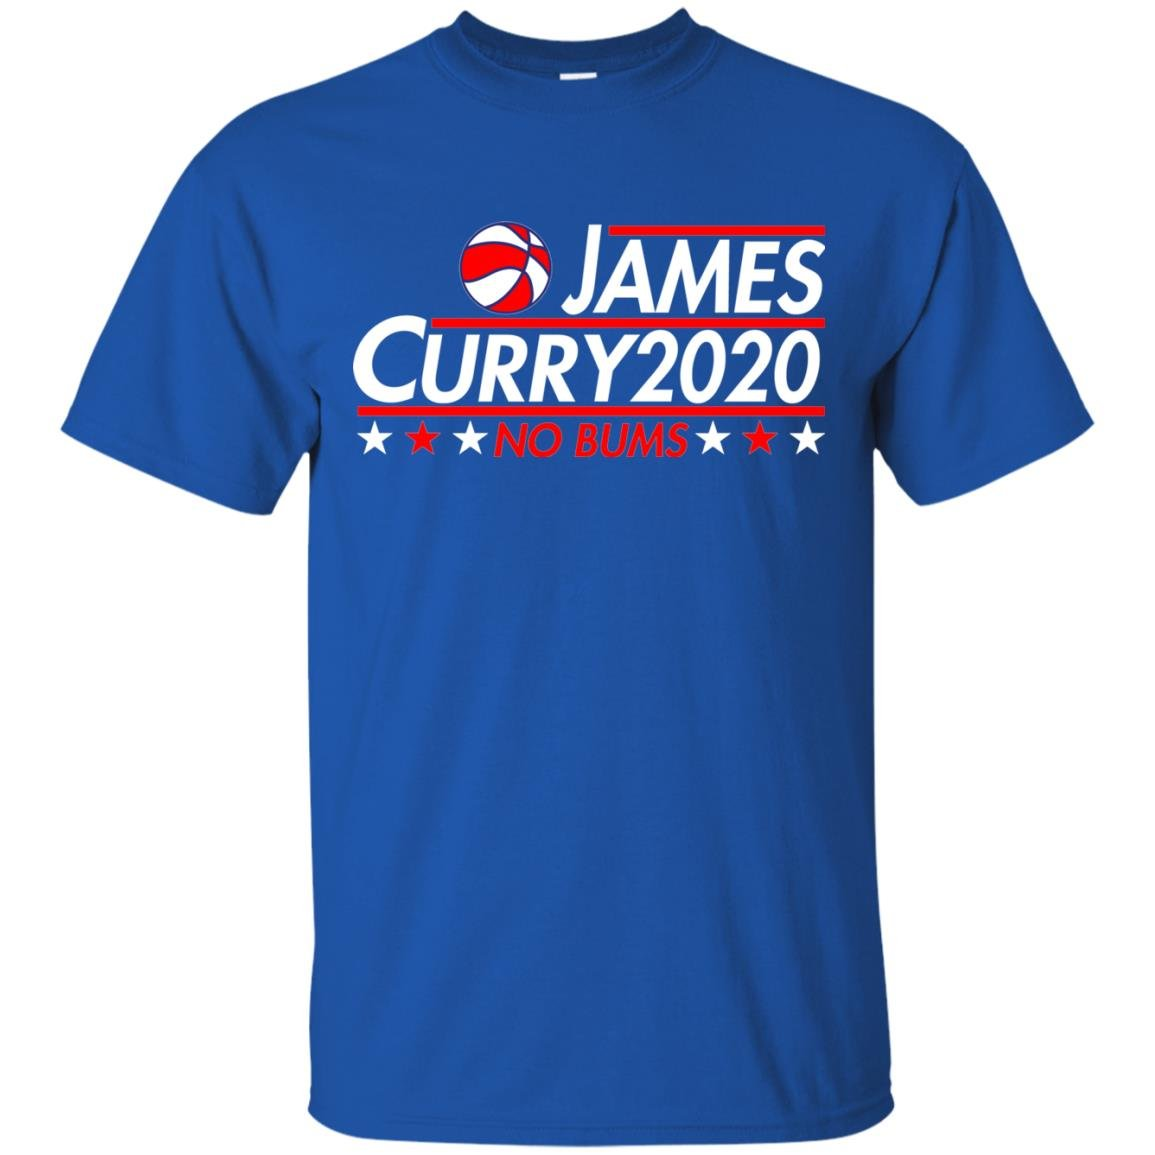 image 2166 - James Curry 2020 shirt No Bums: James & Curry for President